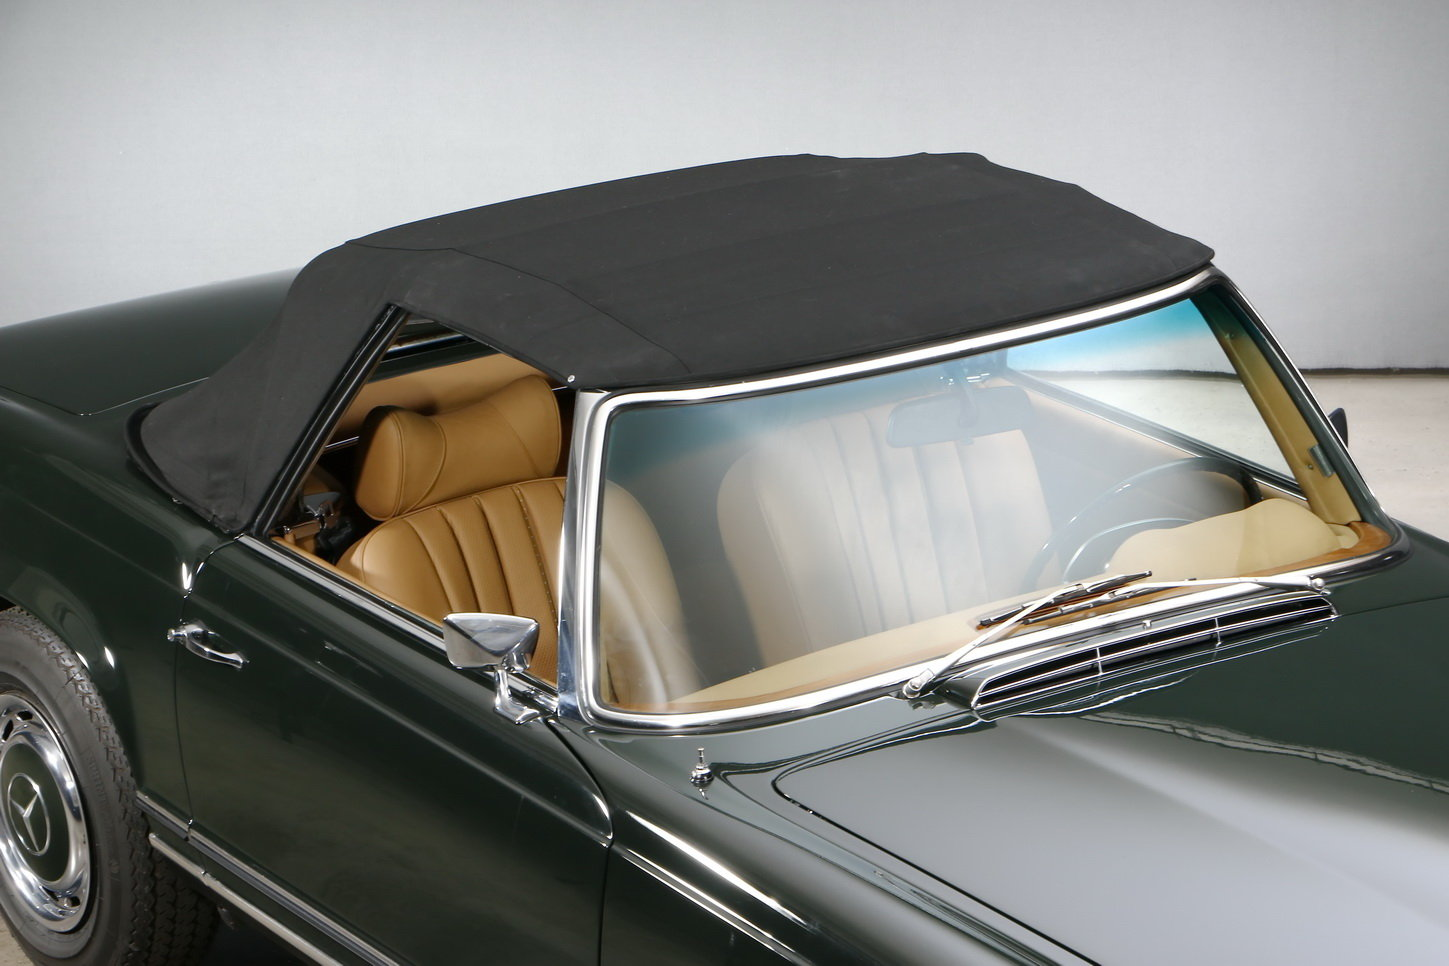 1971 Mercedes-Benz 280 SL Roadster For Sale (picture 4 of 6)